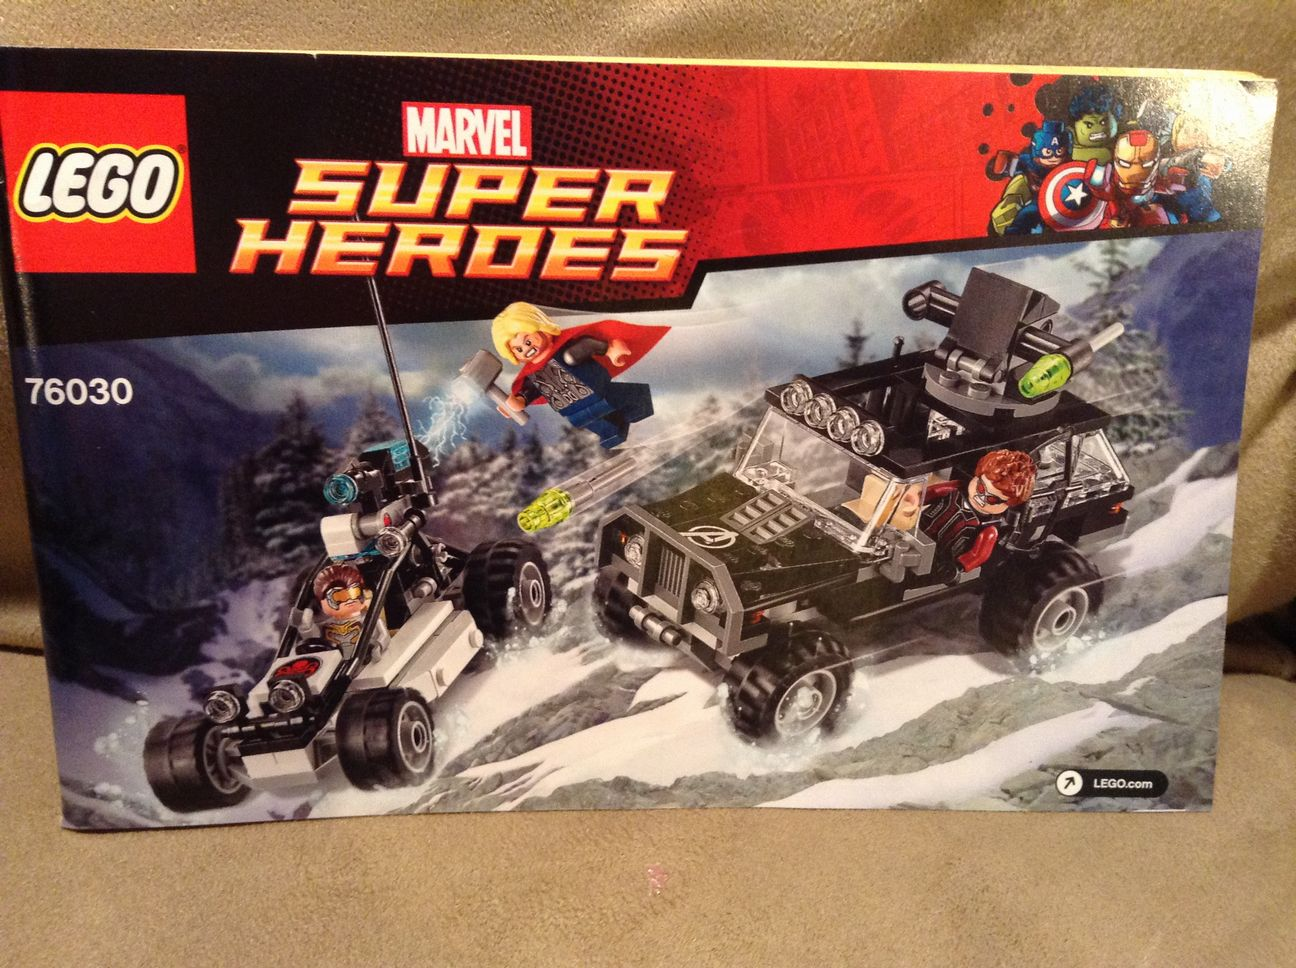 Legos 76030 Marvel Super Heroes Replacement Instruction Manual